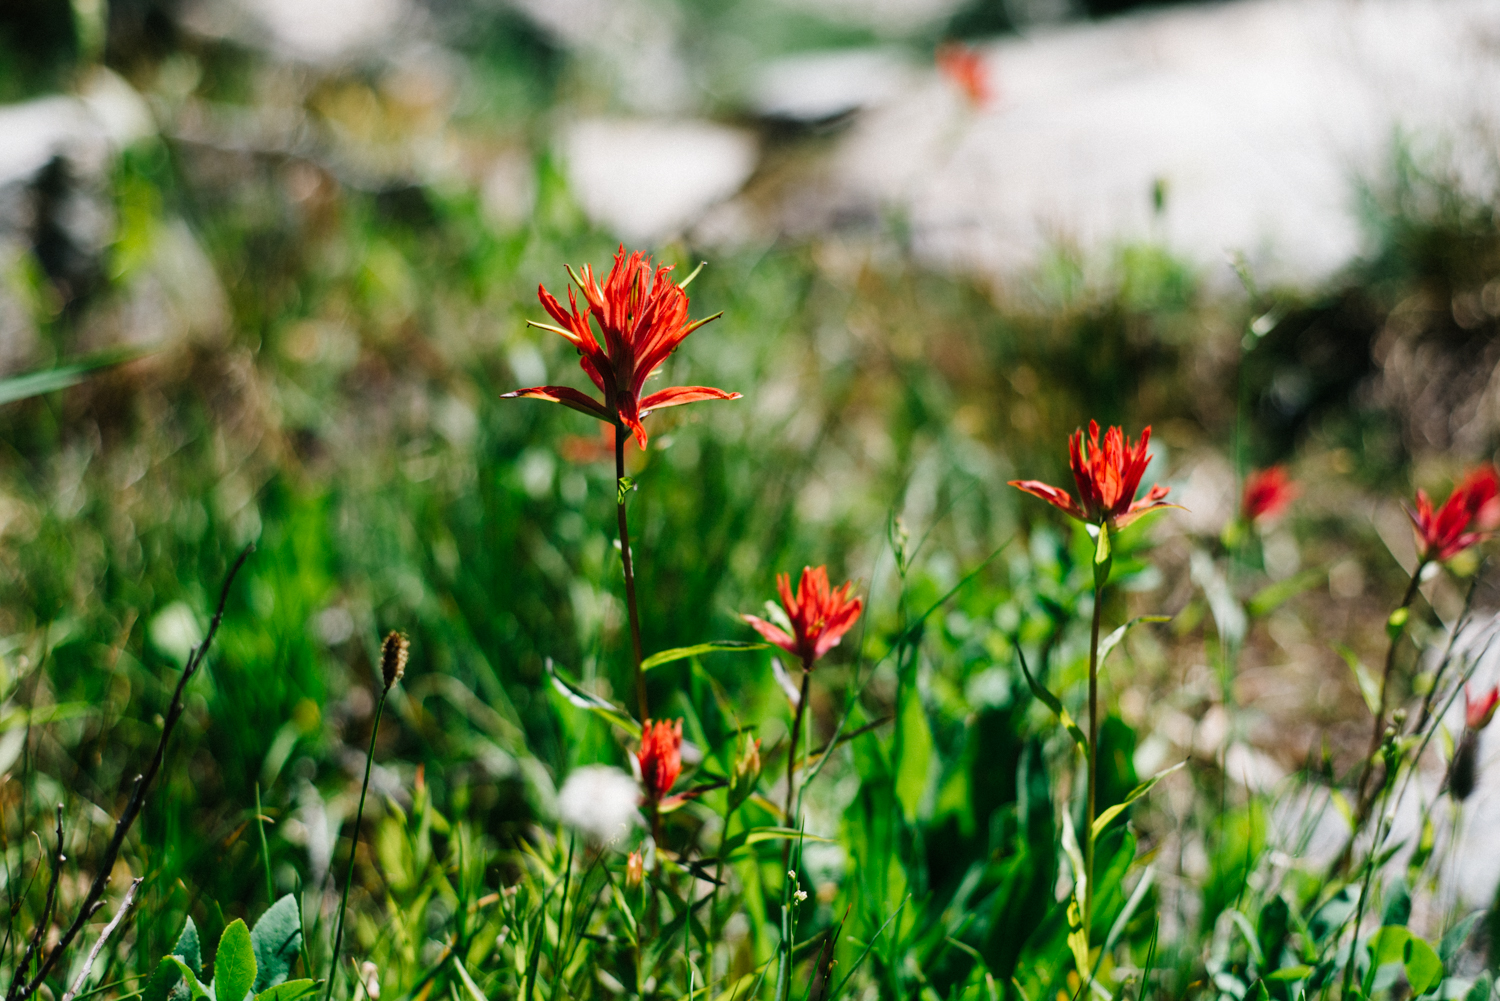 My favorite flower, the Indian Paintbrush!